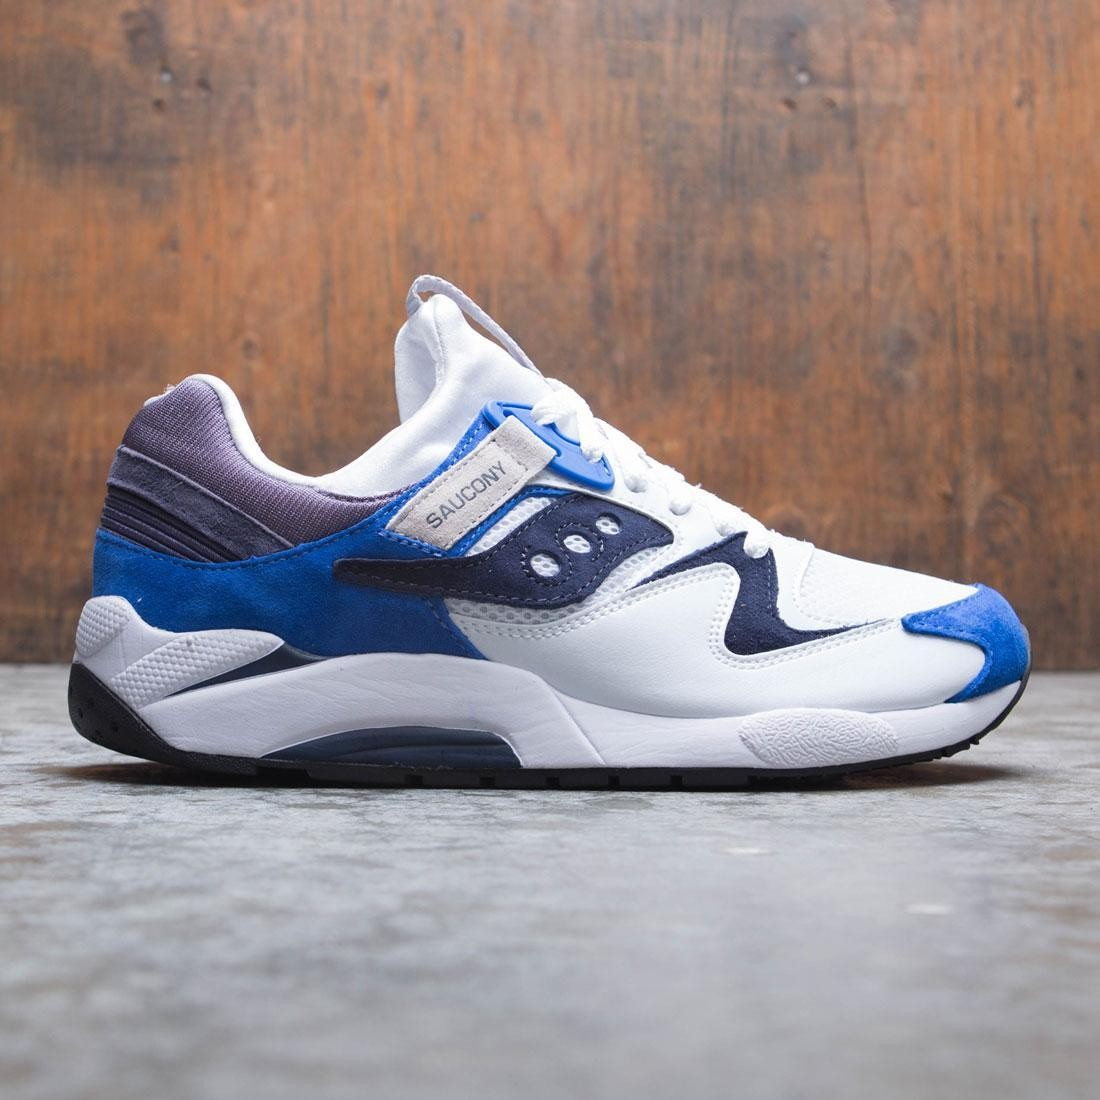 saucony grid 9000 white blue